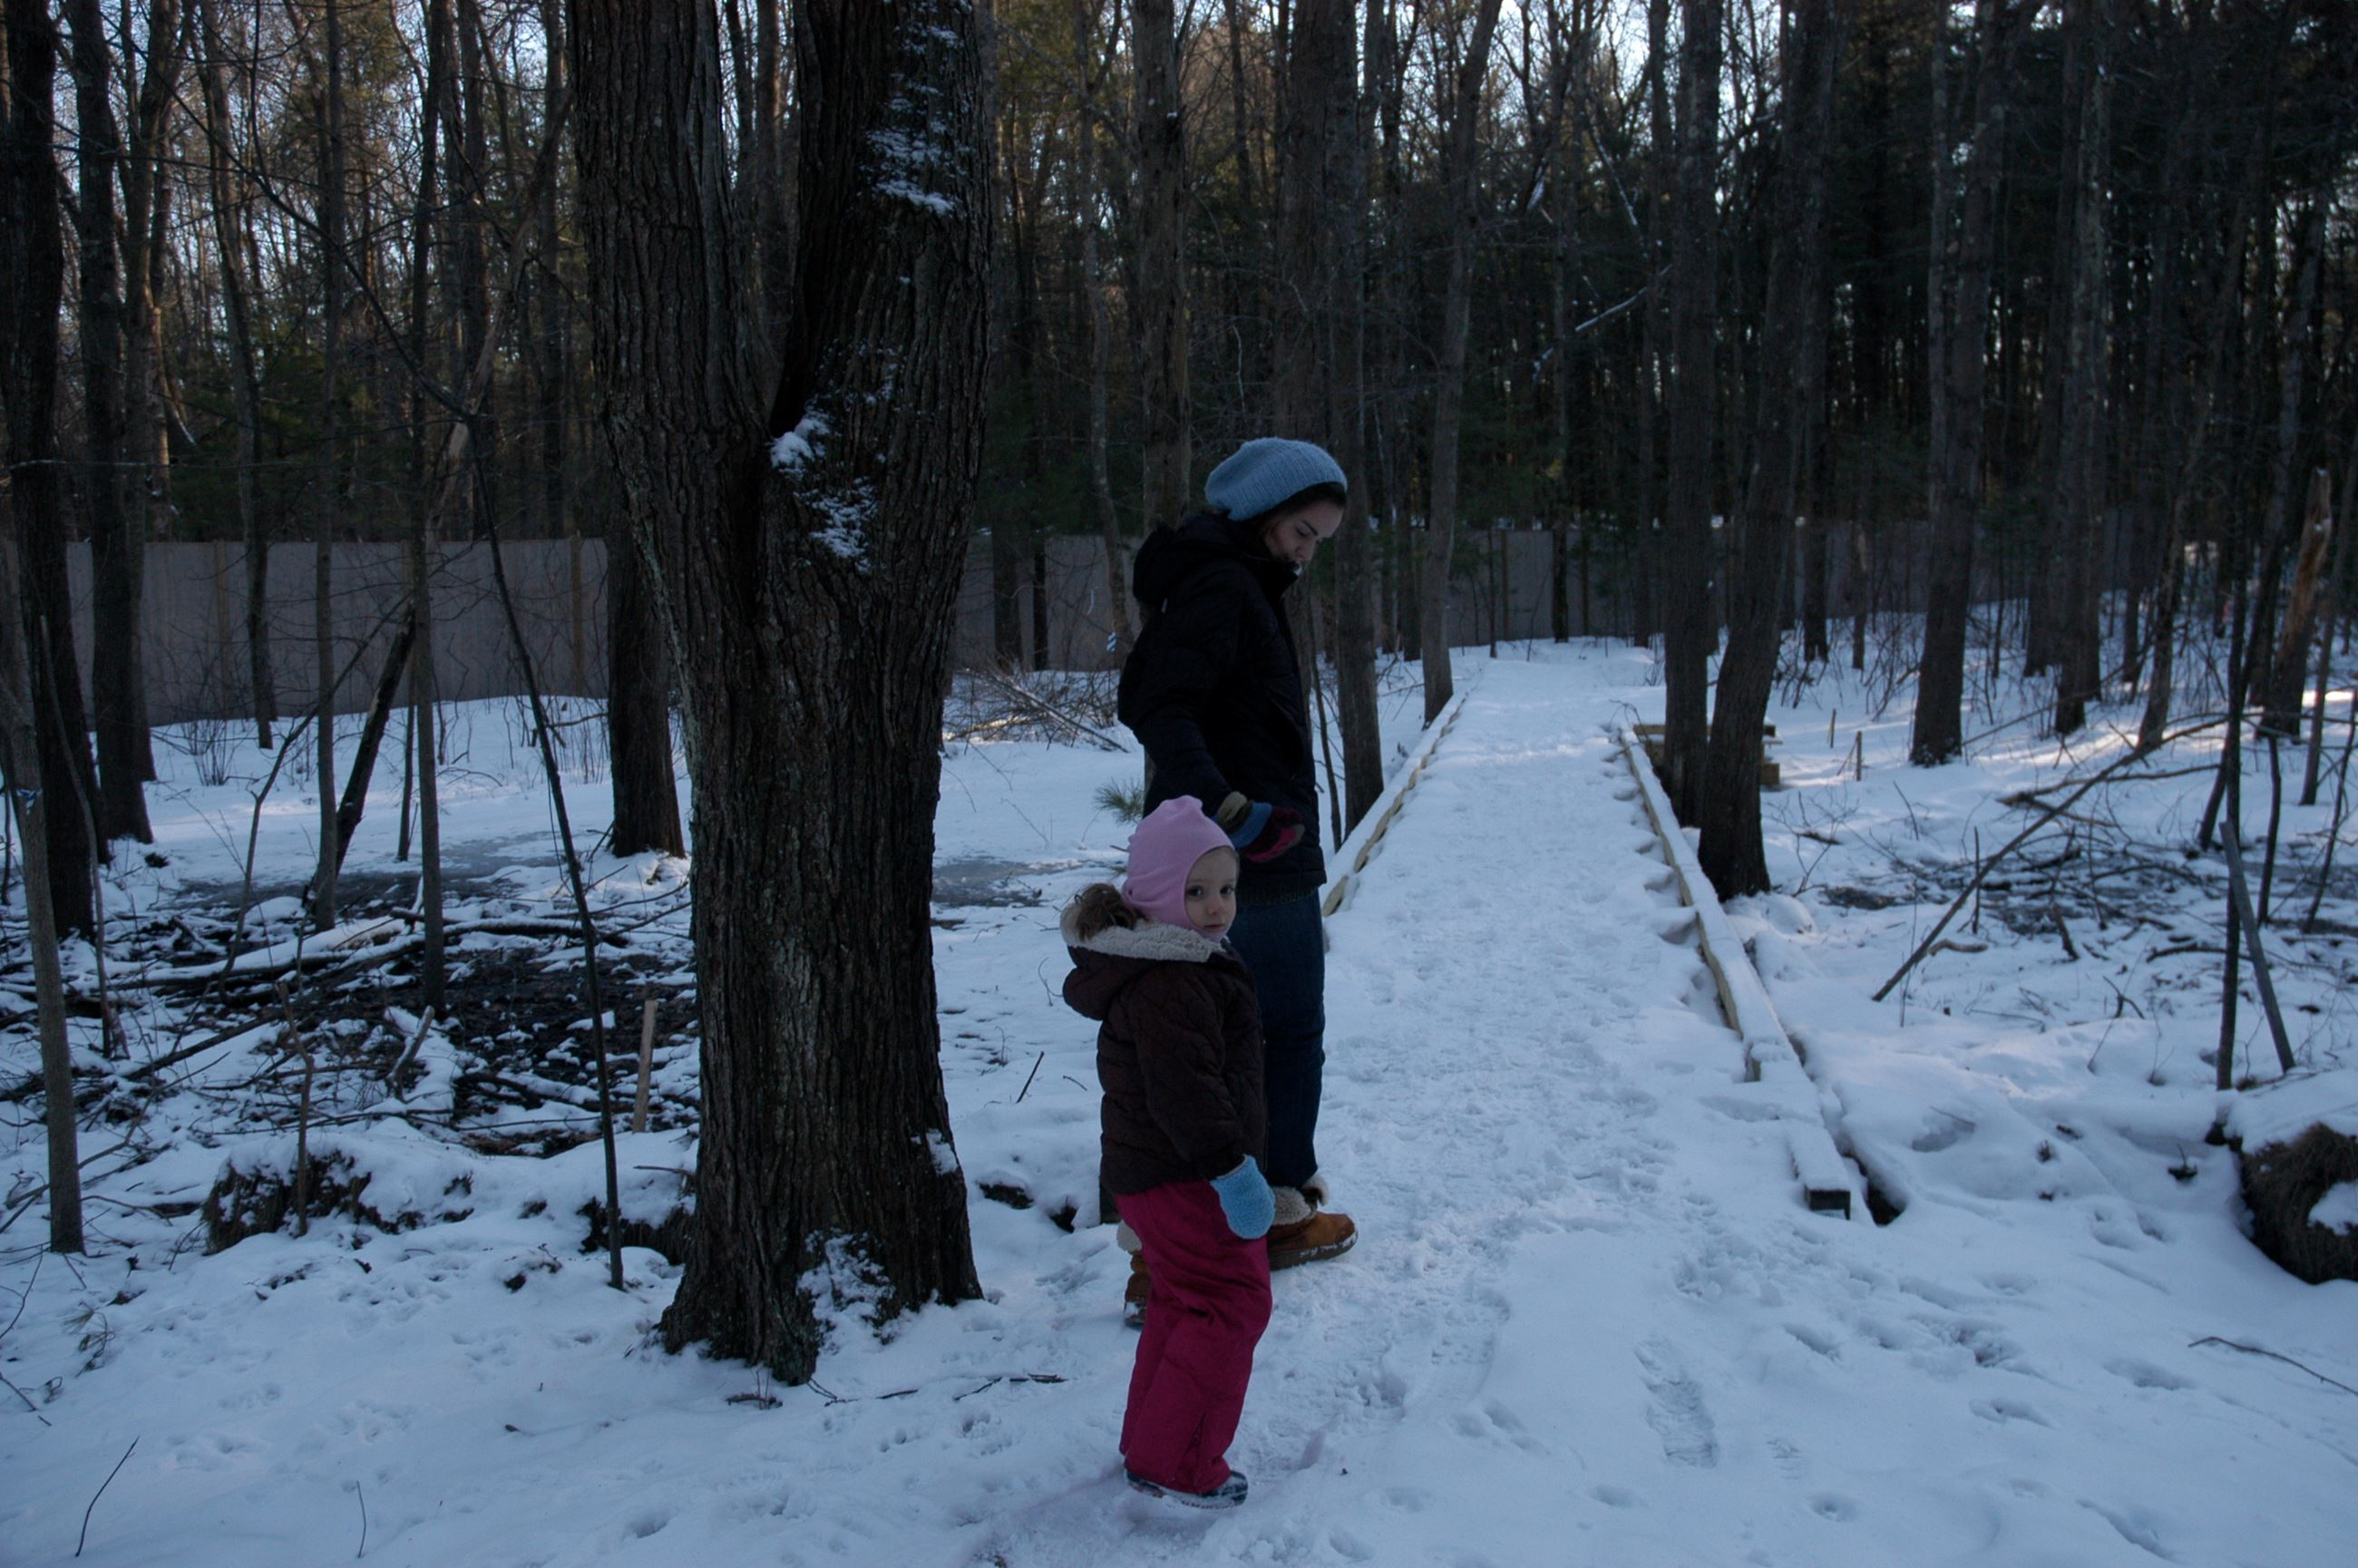 winter_boadwalk_crossing_4